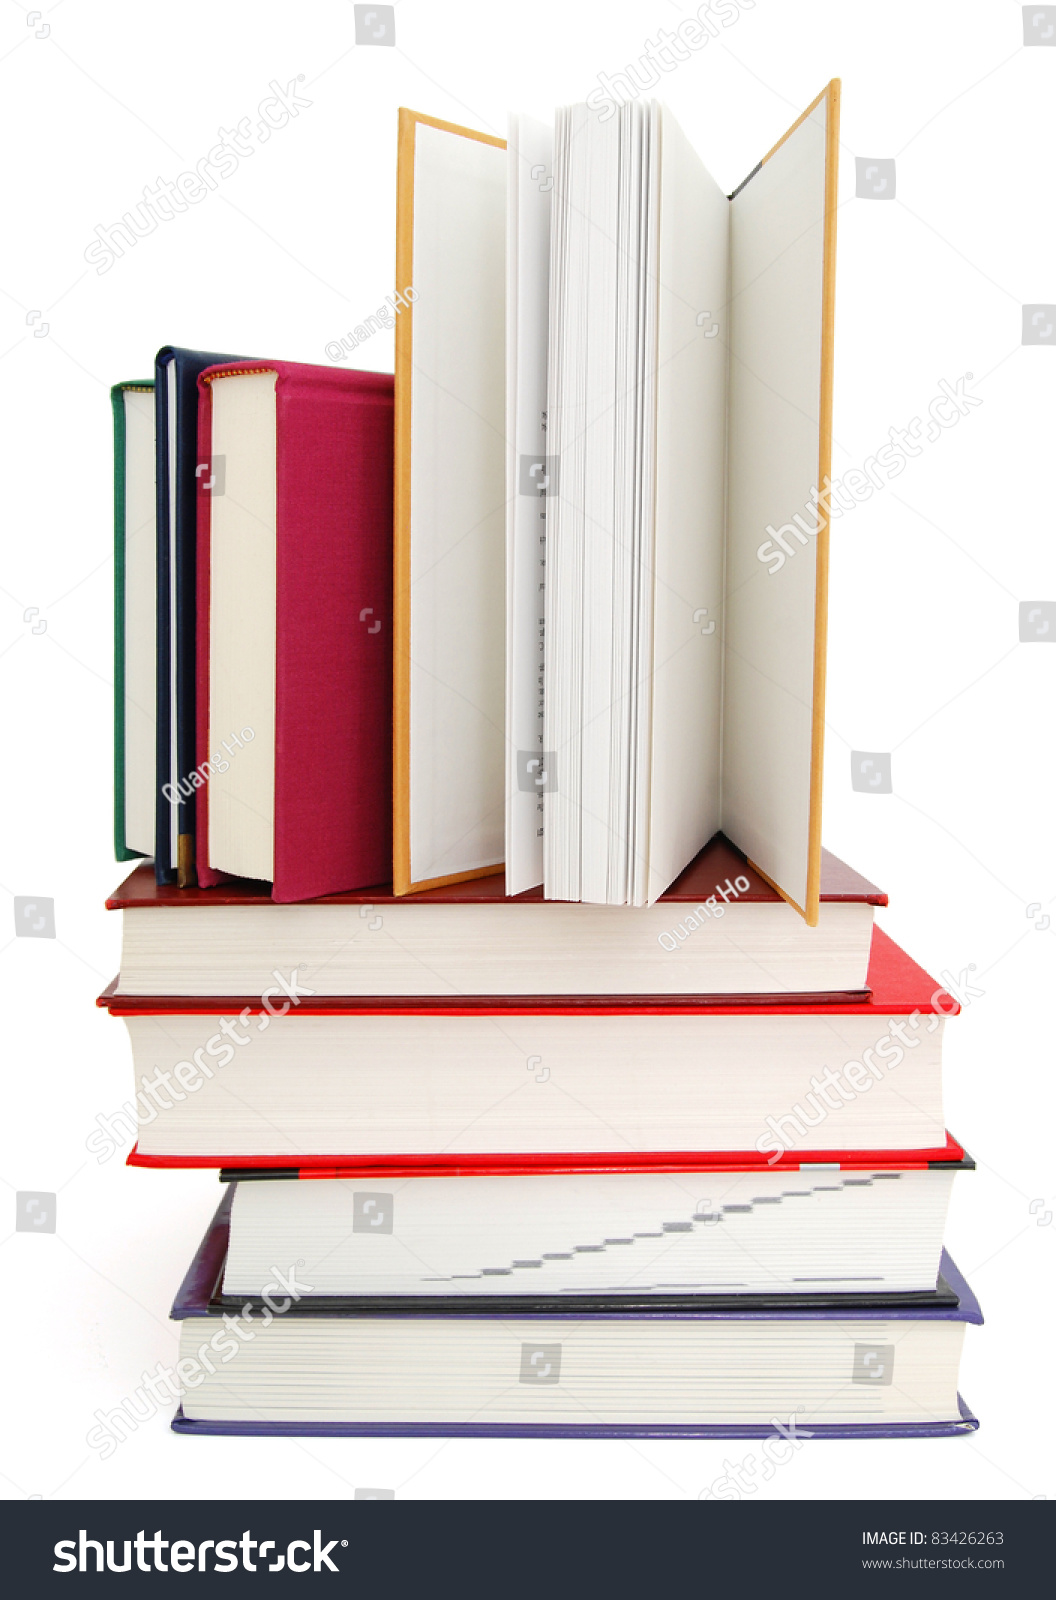 how to decorate your homework book decorating on homework books stock photo 83426263 13508